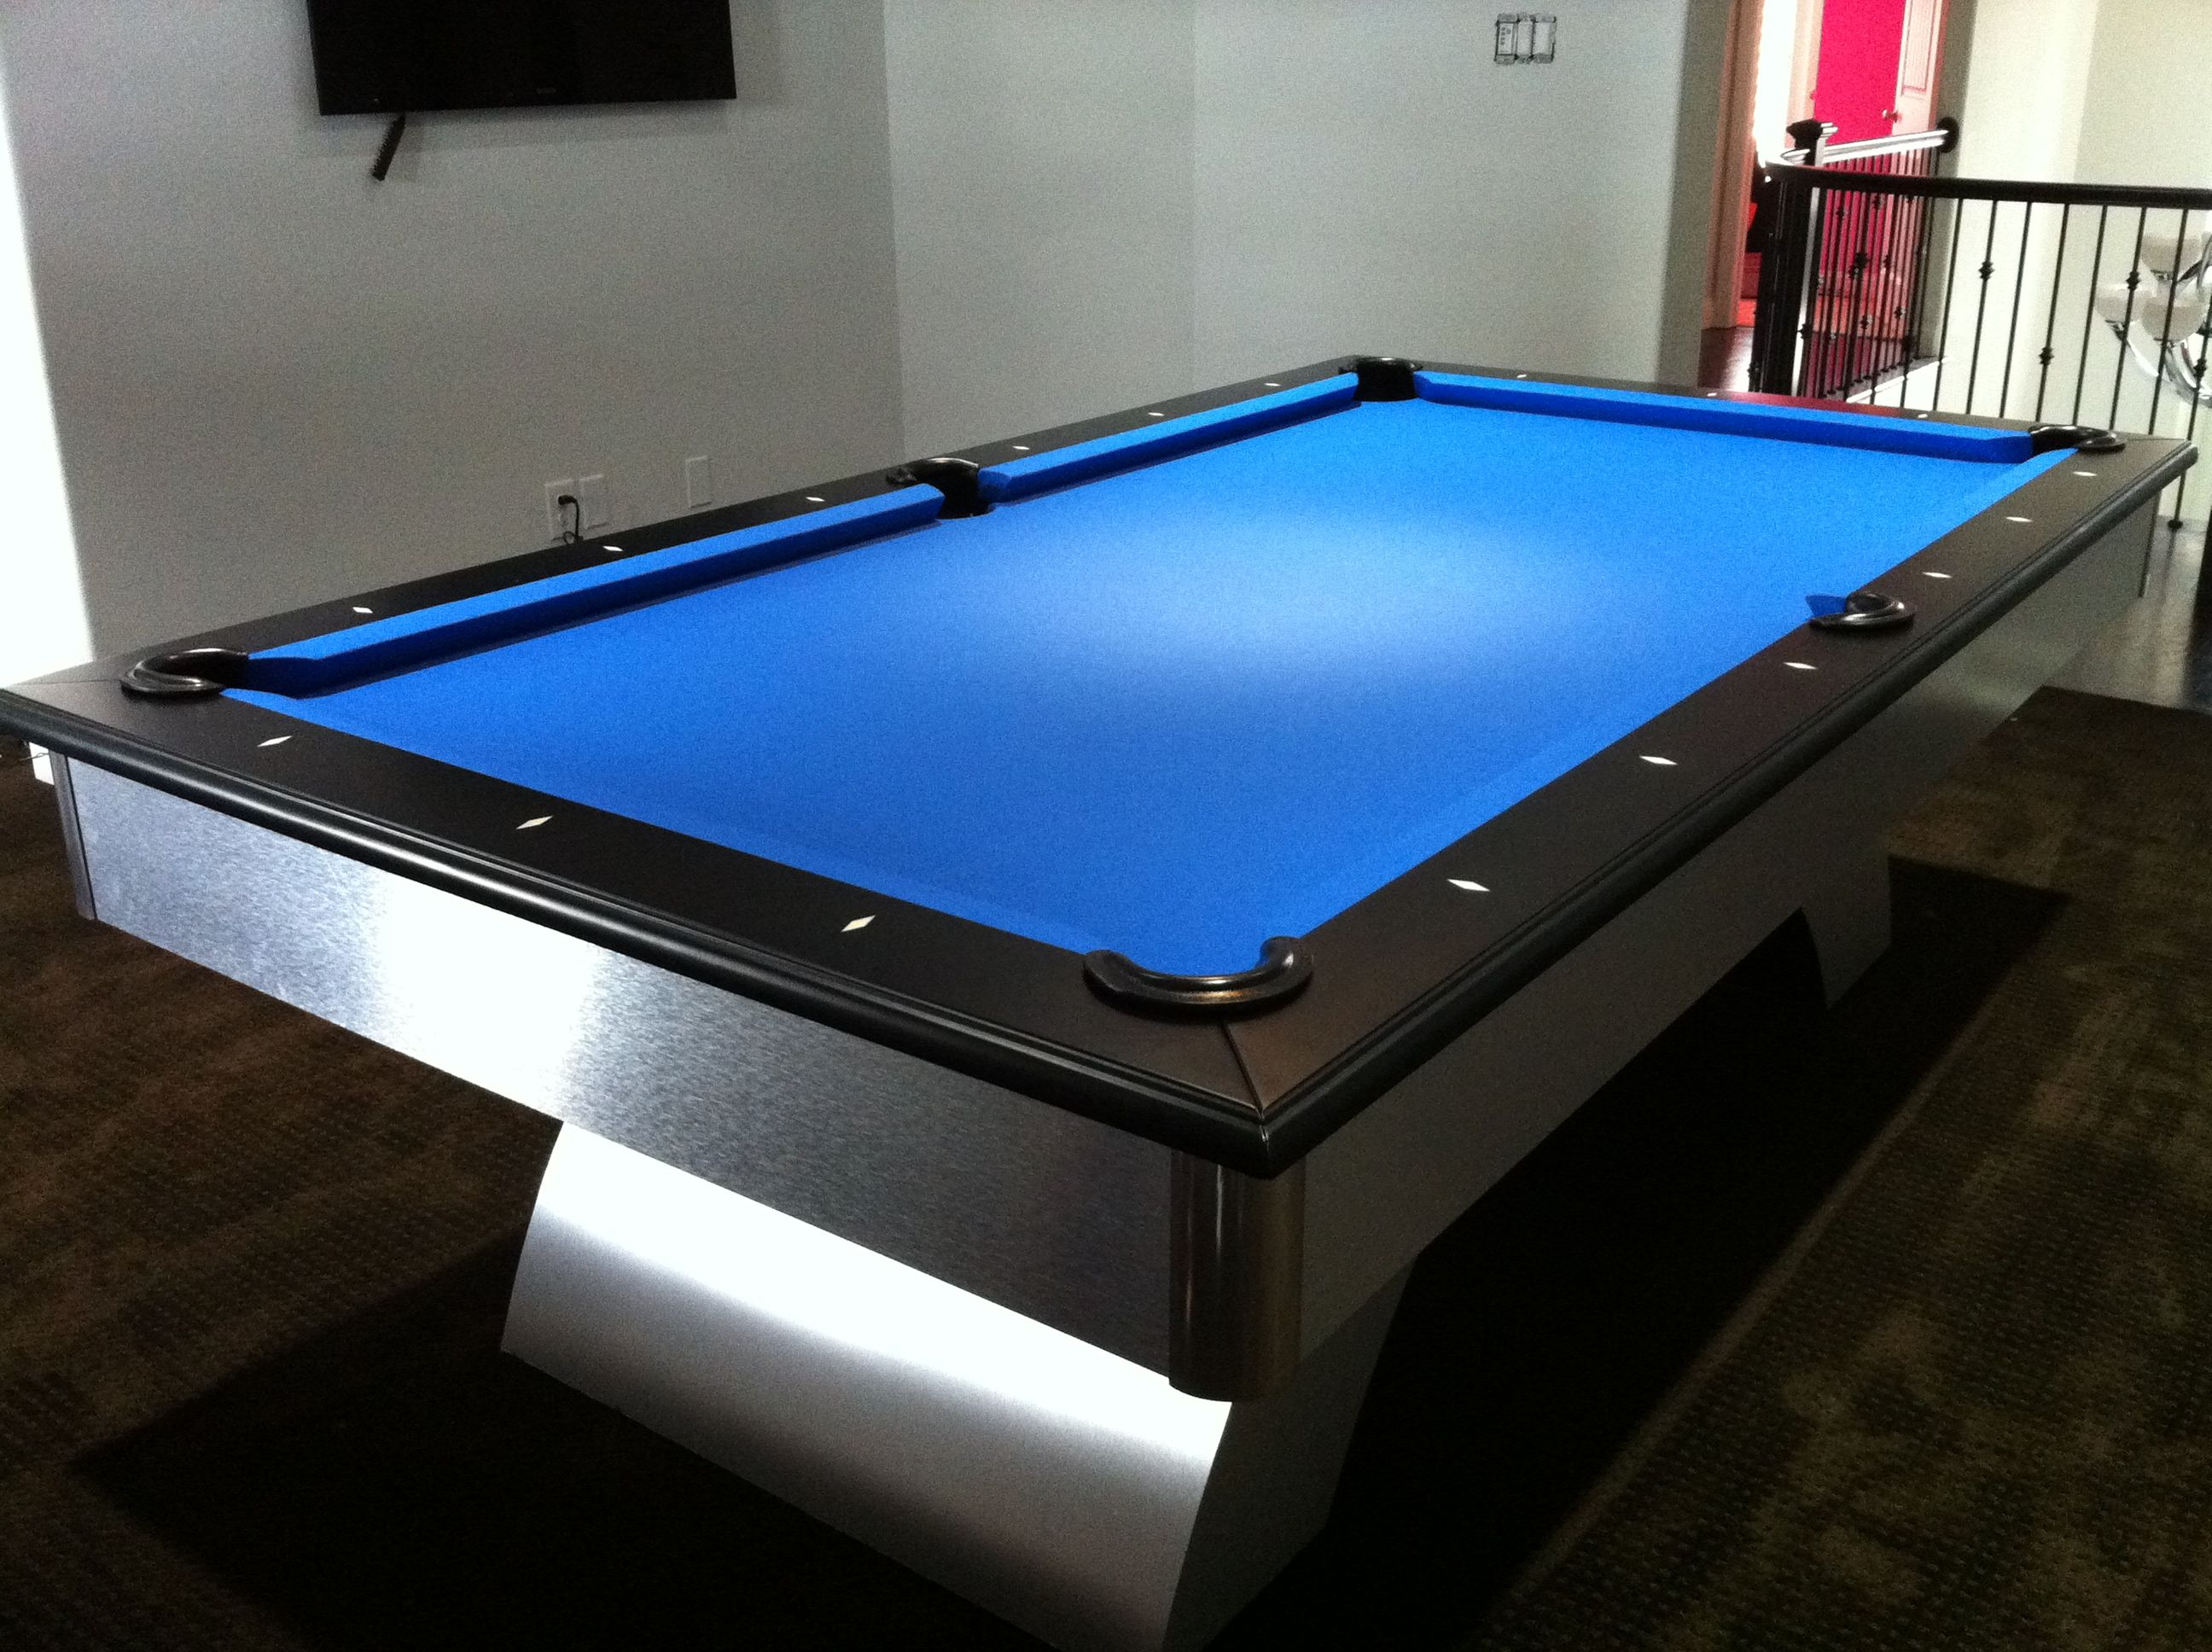 Pool Tables Inch Slate Pool Tables For Sale Sears Has Pool Tables - Sears billiard table sale